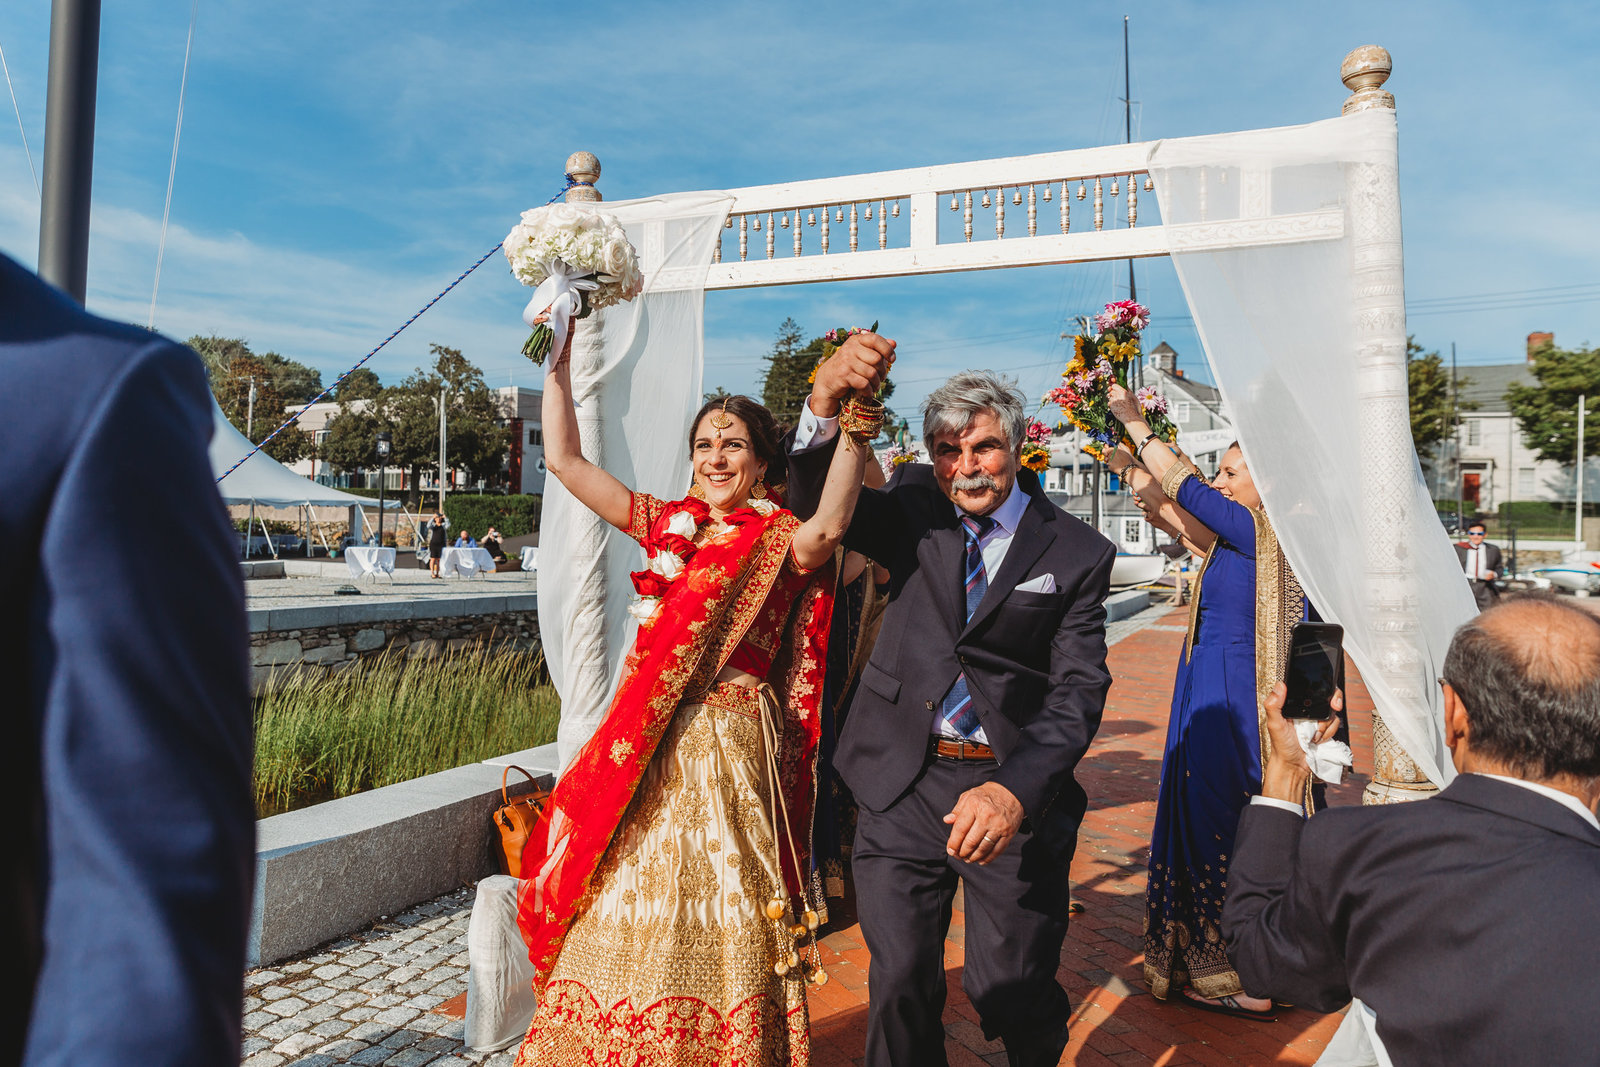 indian bride and father walk under archway into celebration in mass